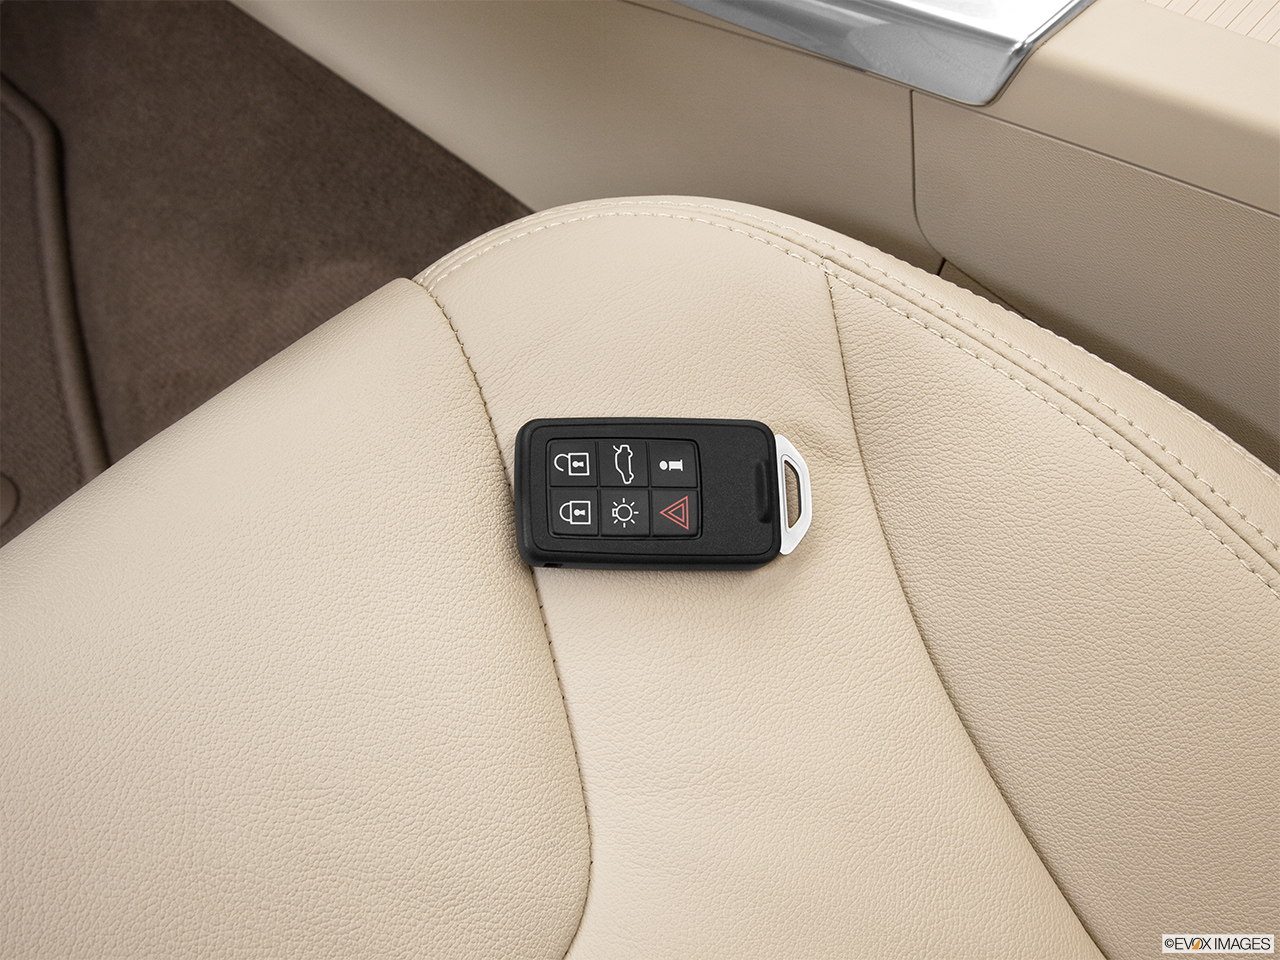 2013 Volvo XC60 3.2 FWD Premier Plus Key fob on driver's seat.